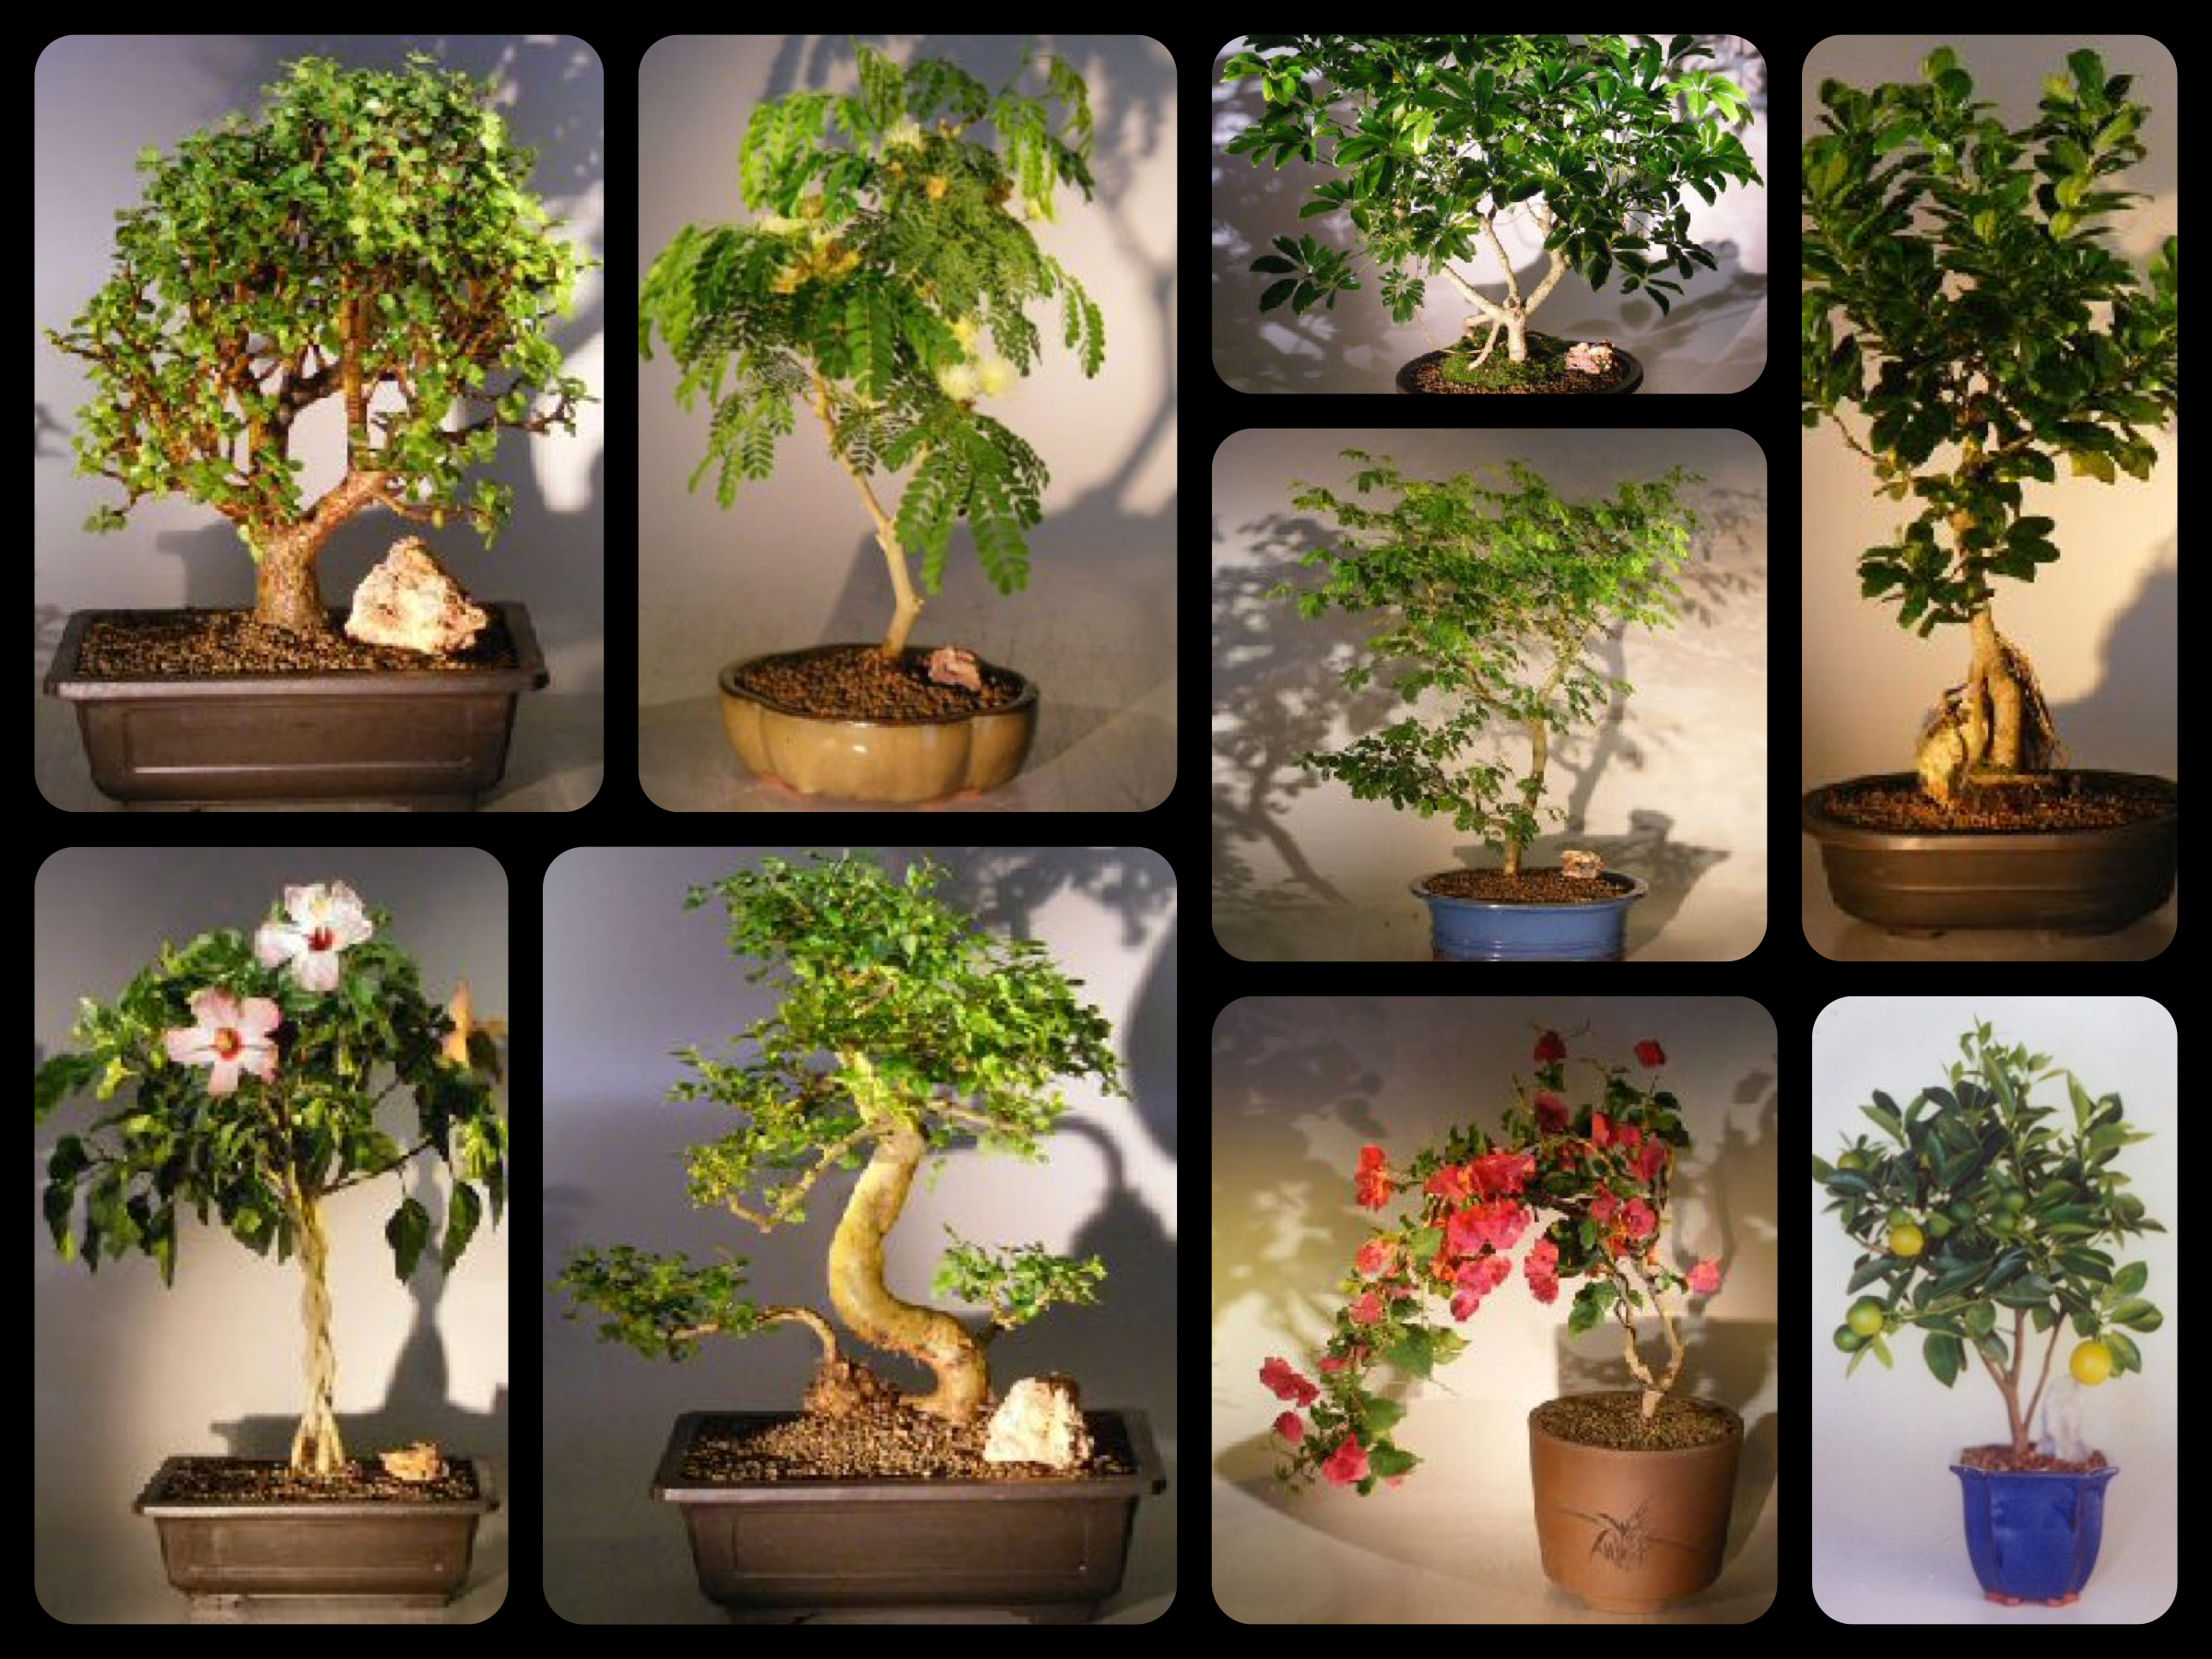 Bonsai Tree | Good Fortune & Happiness | Best Realtor Gifts | Real Estate Client Gifts